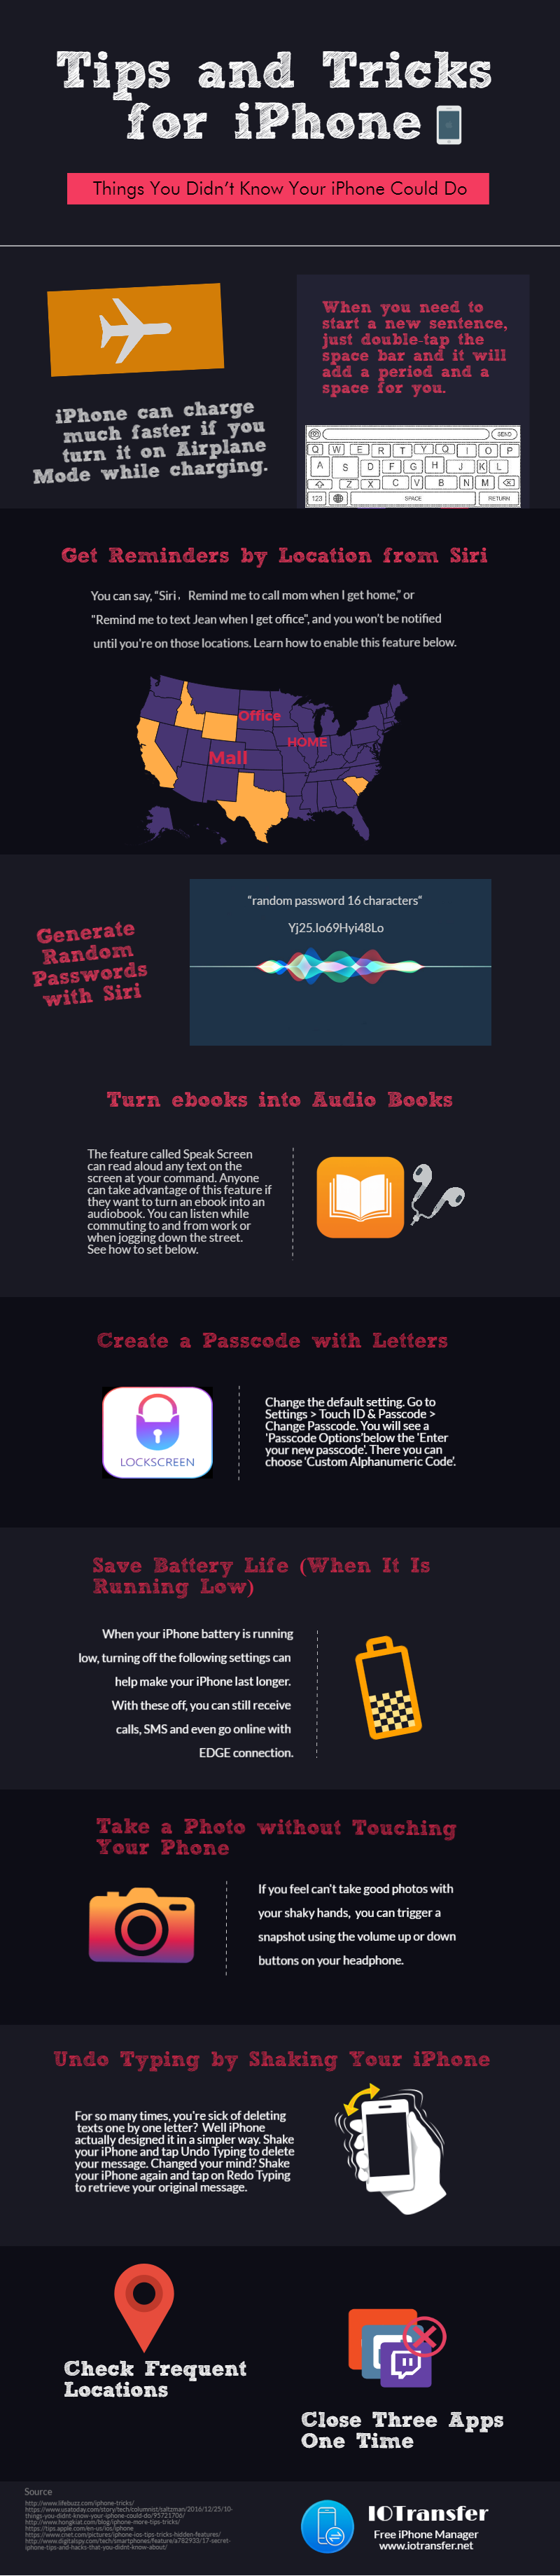 iPhone tips infographic